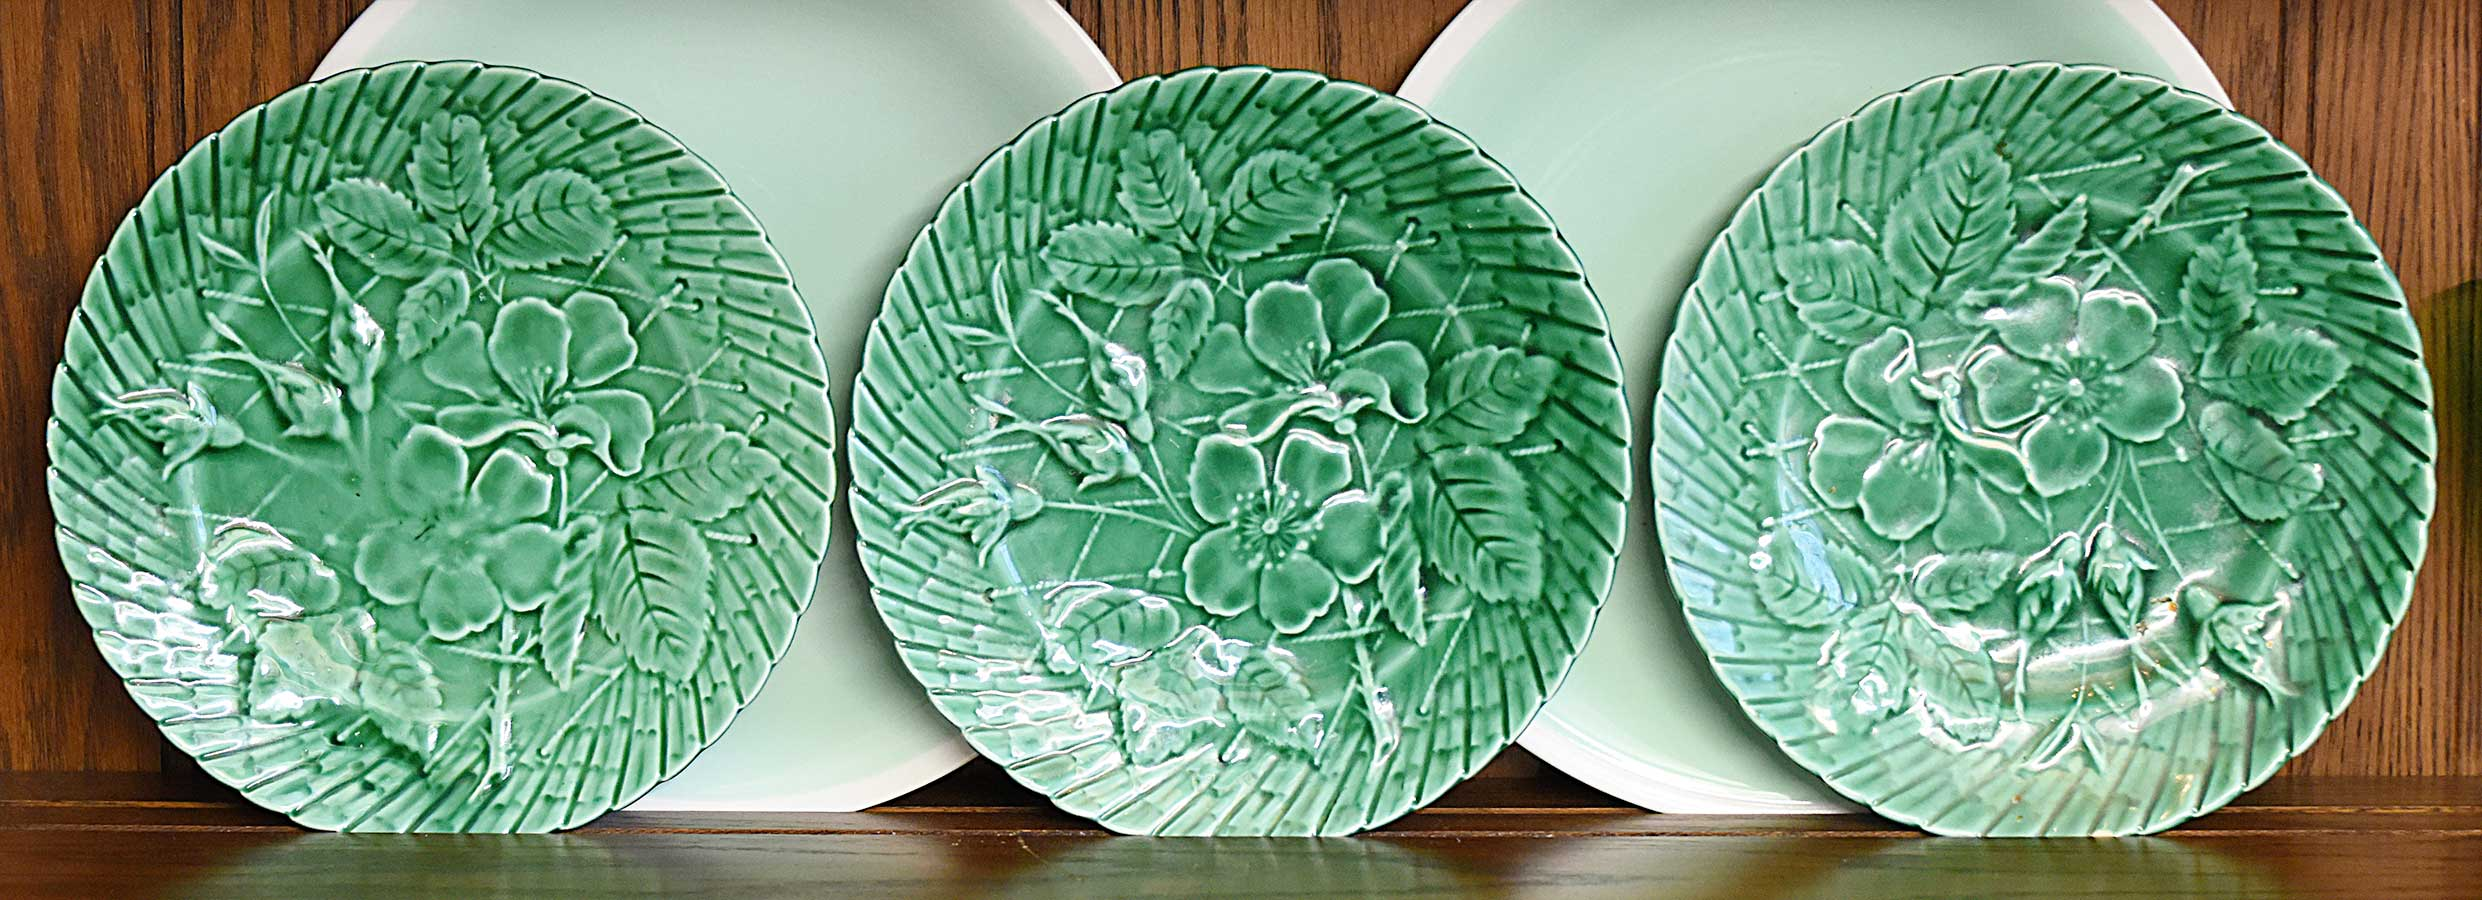 Green Majolica from France